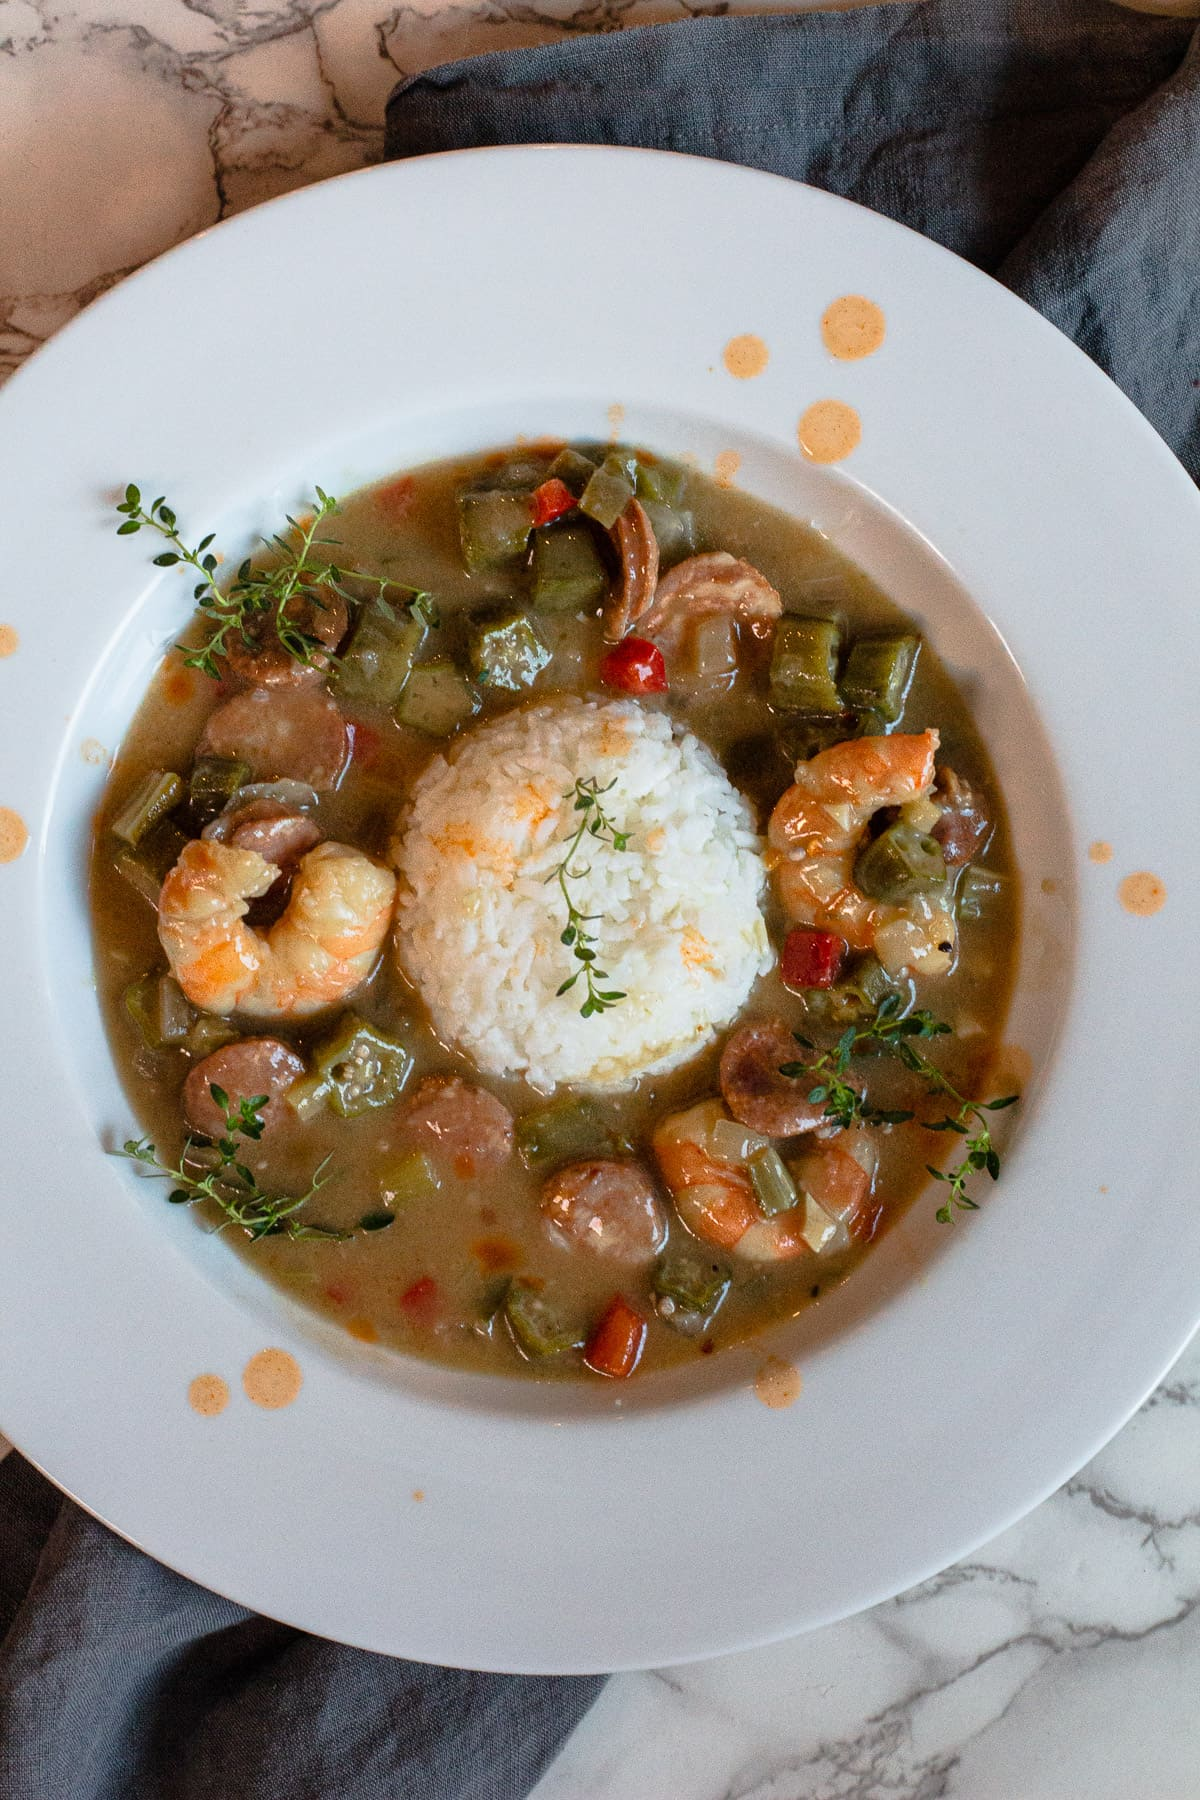 Shrimp and Andouille Sausage Gumbo with Rice